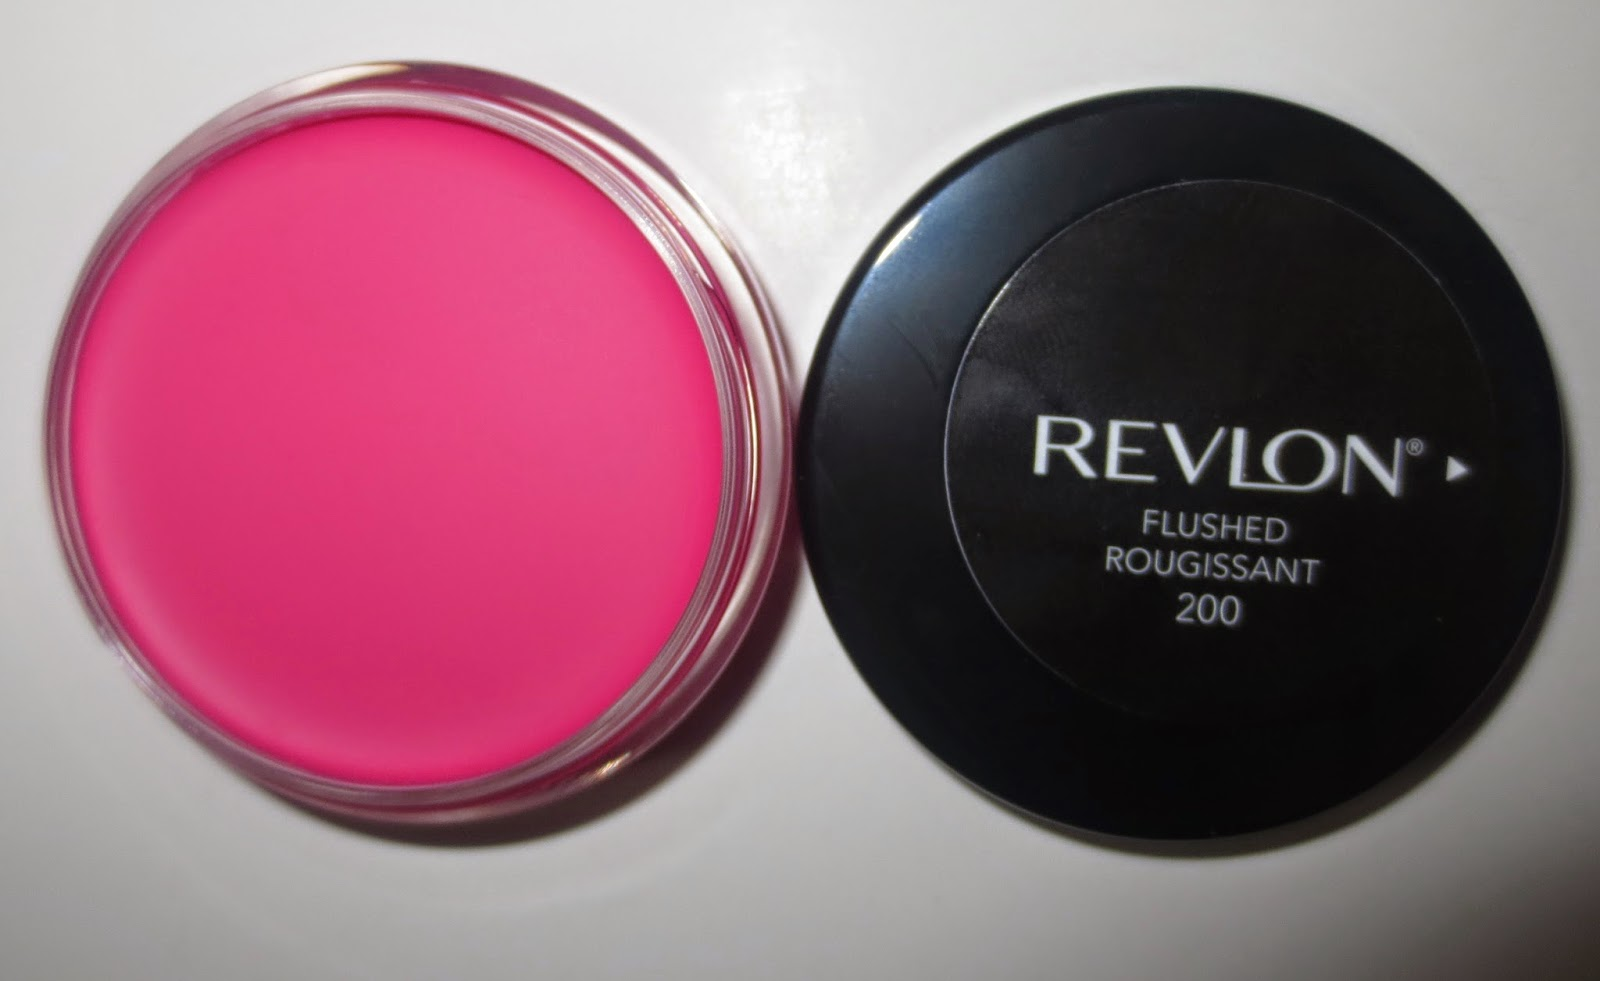 Revlon Cream Blush in Flushed